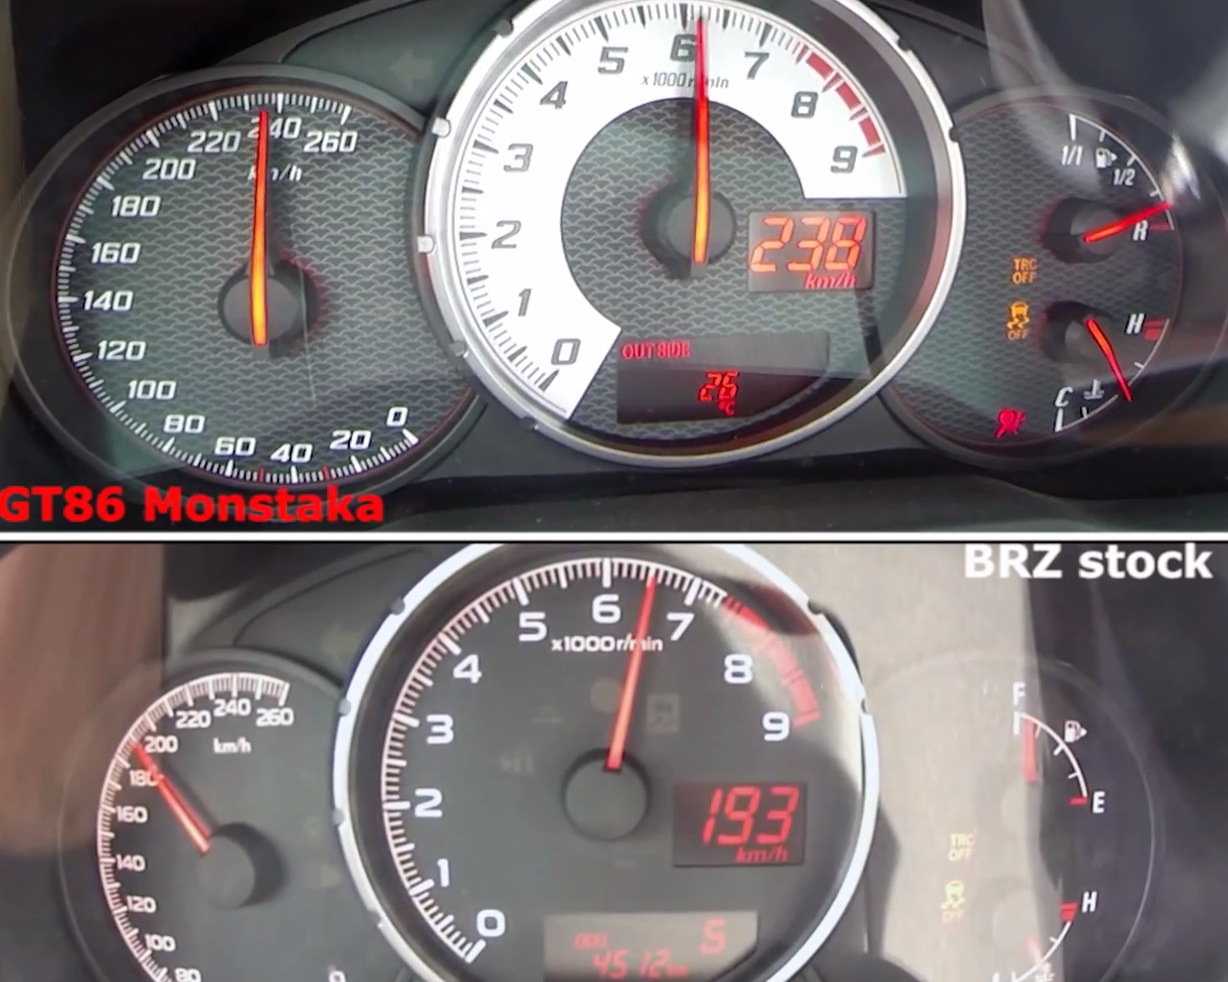 Supercharged Toyota GT 86 with 400 HP vs Stock Subaru BRZ ...